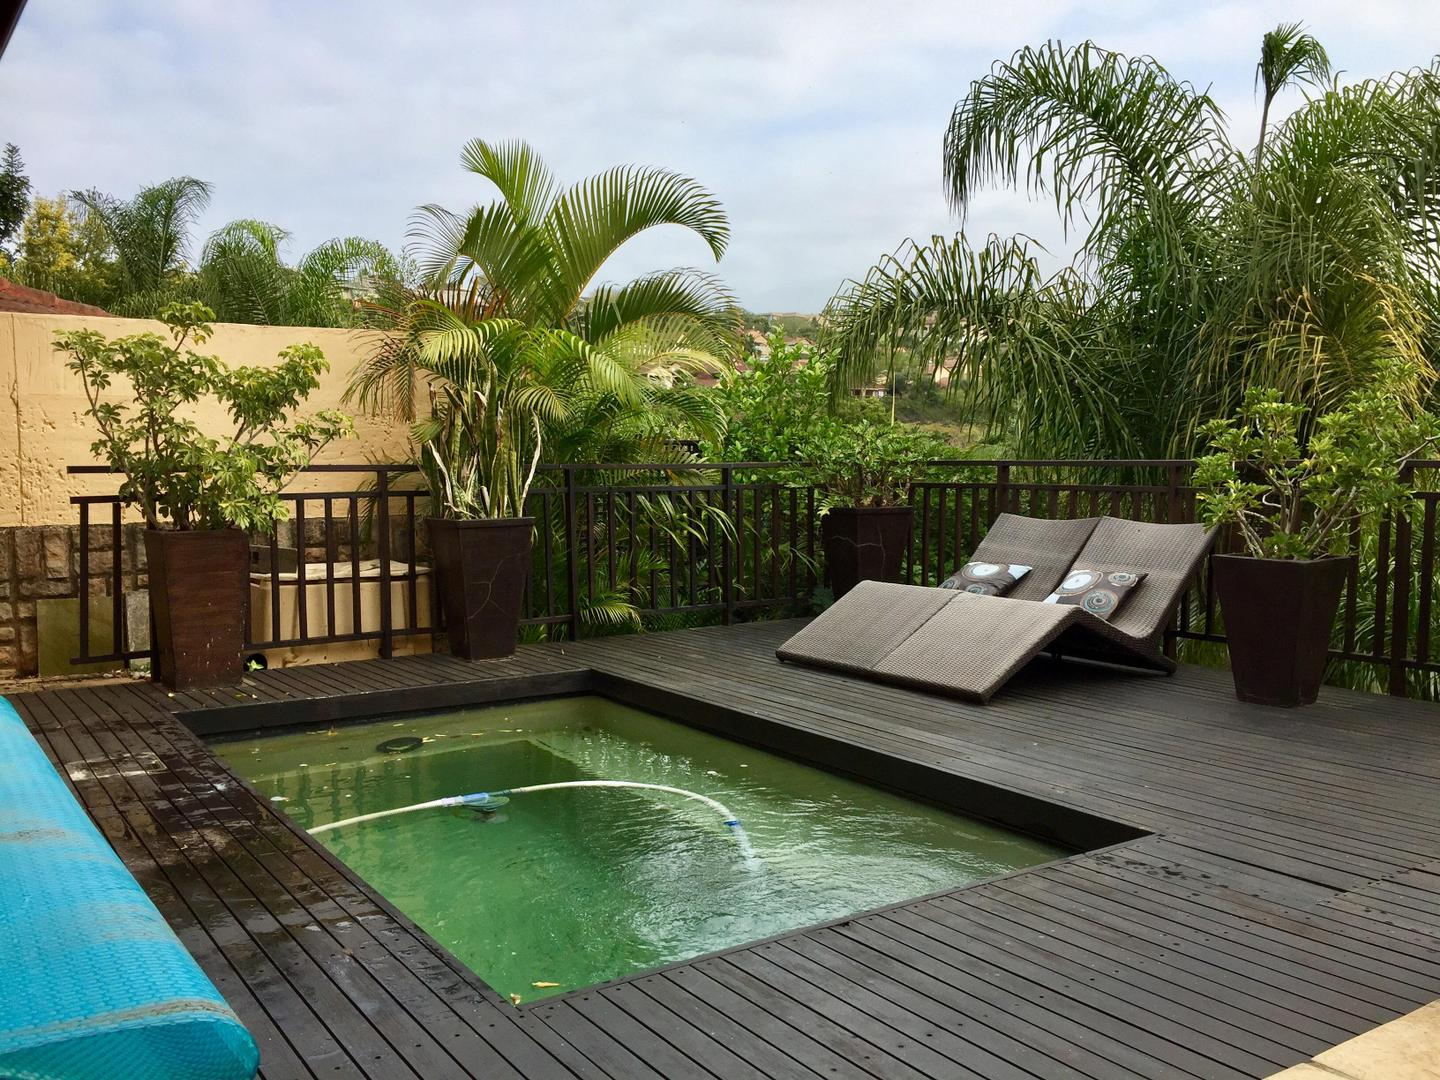 3 Bedroom House for sale in La Lucia 1801093 : photo#14